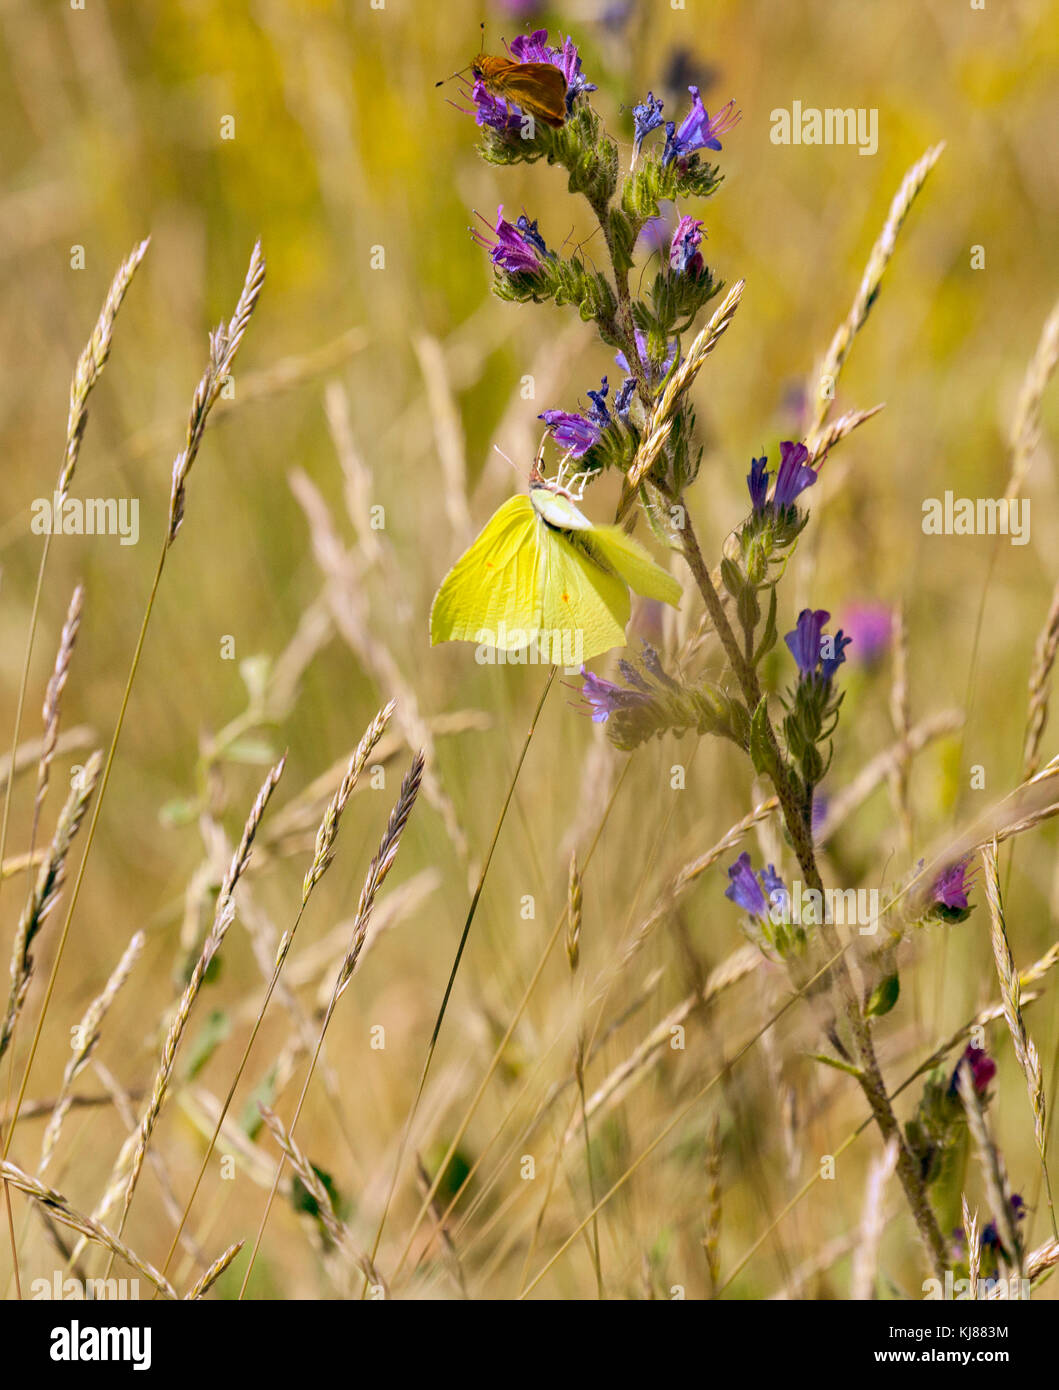 Brimstone butterfly Gonepteryx rhamni basking in the sun with its wings open showing the yellow colour of its upper - Stock Image